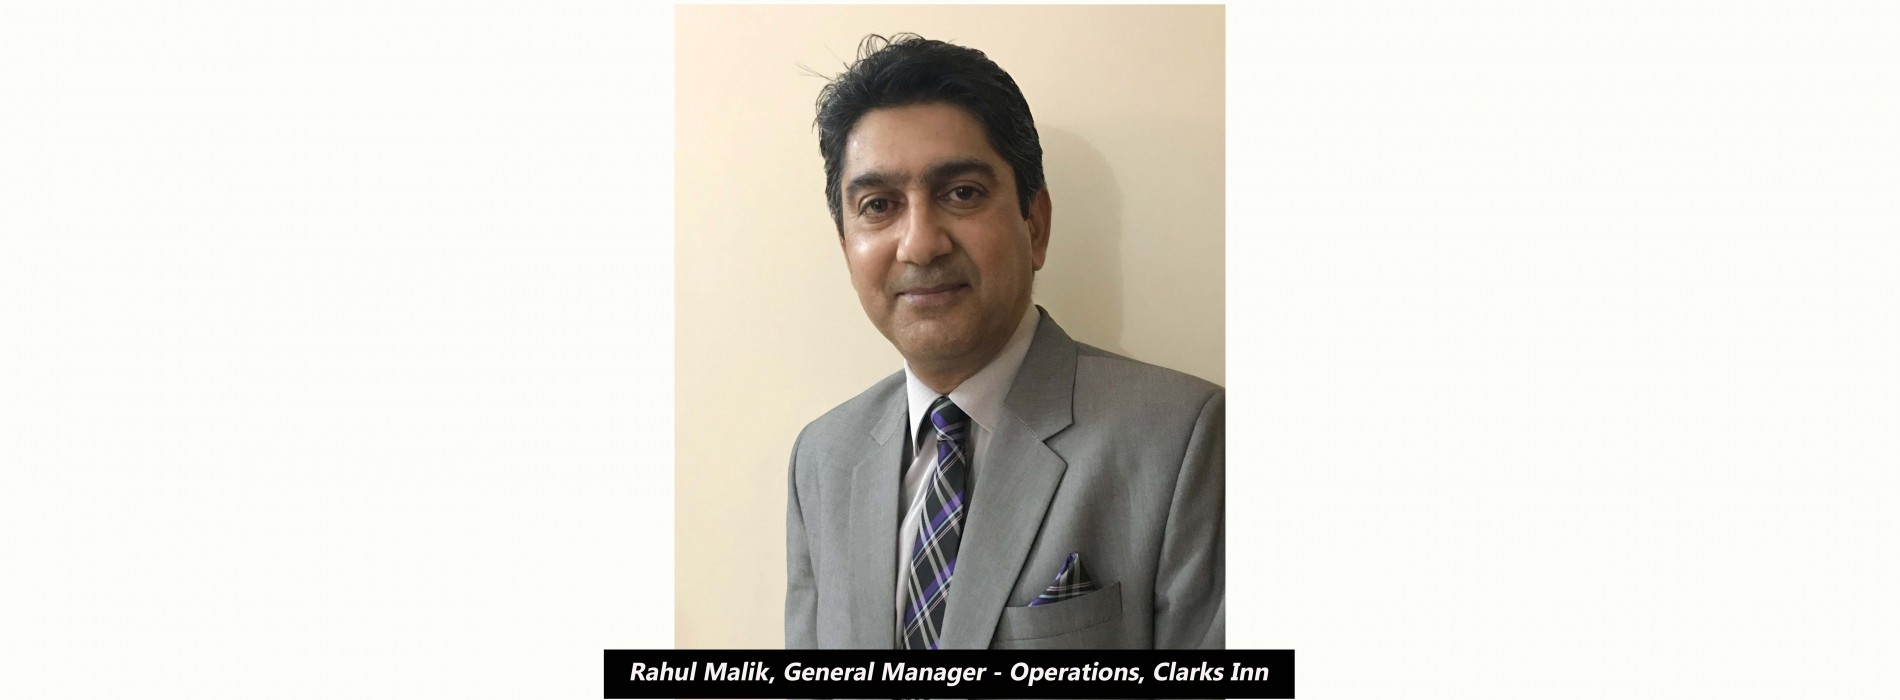 Clarks Inn appoints Rahul Malik as General Manager – Operations